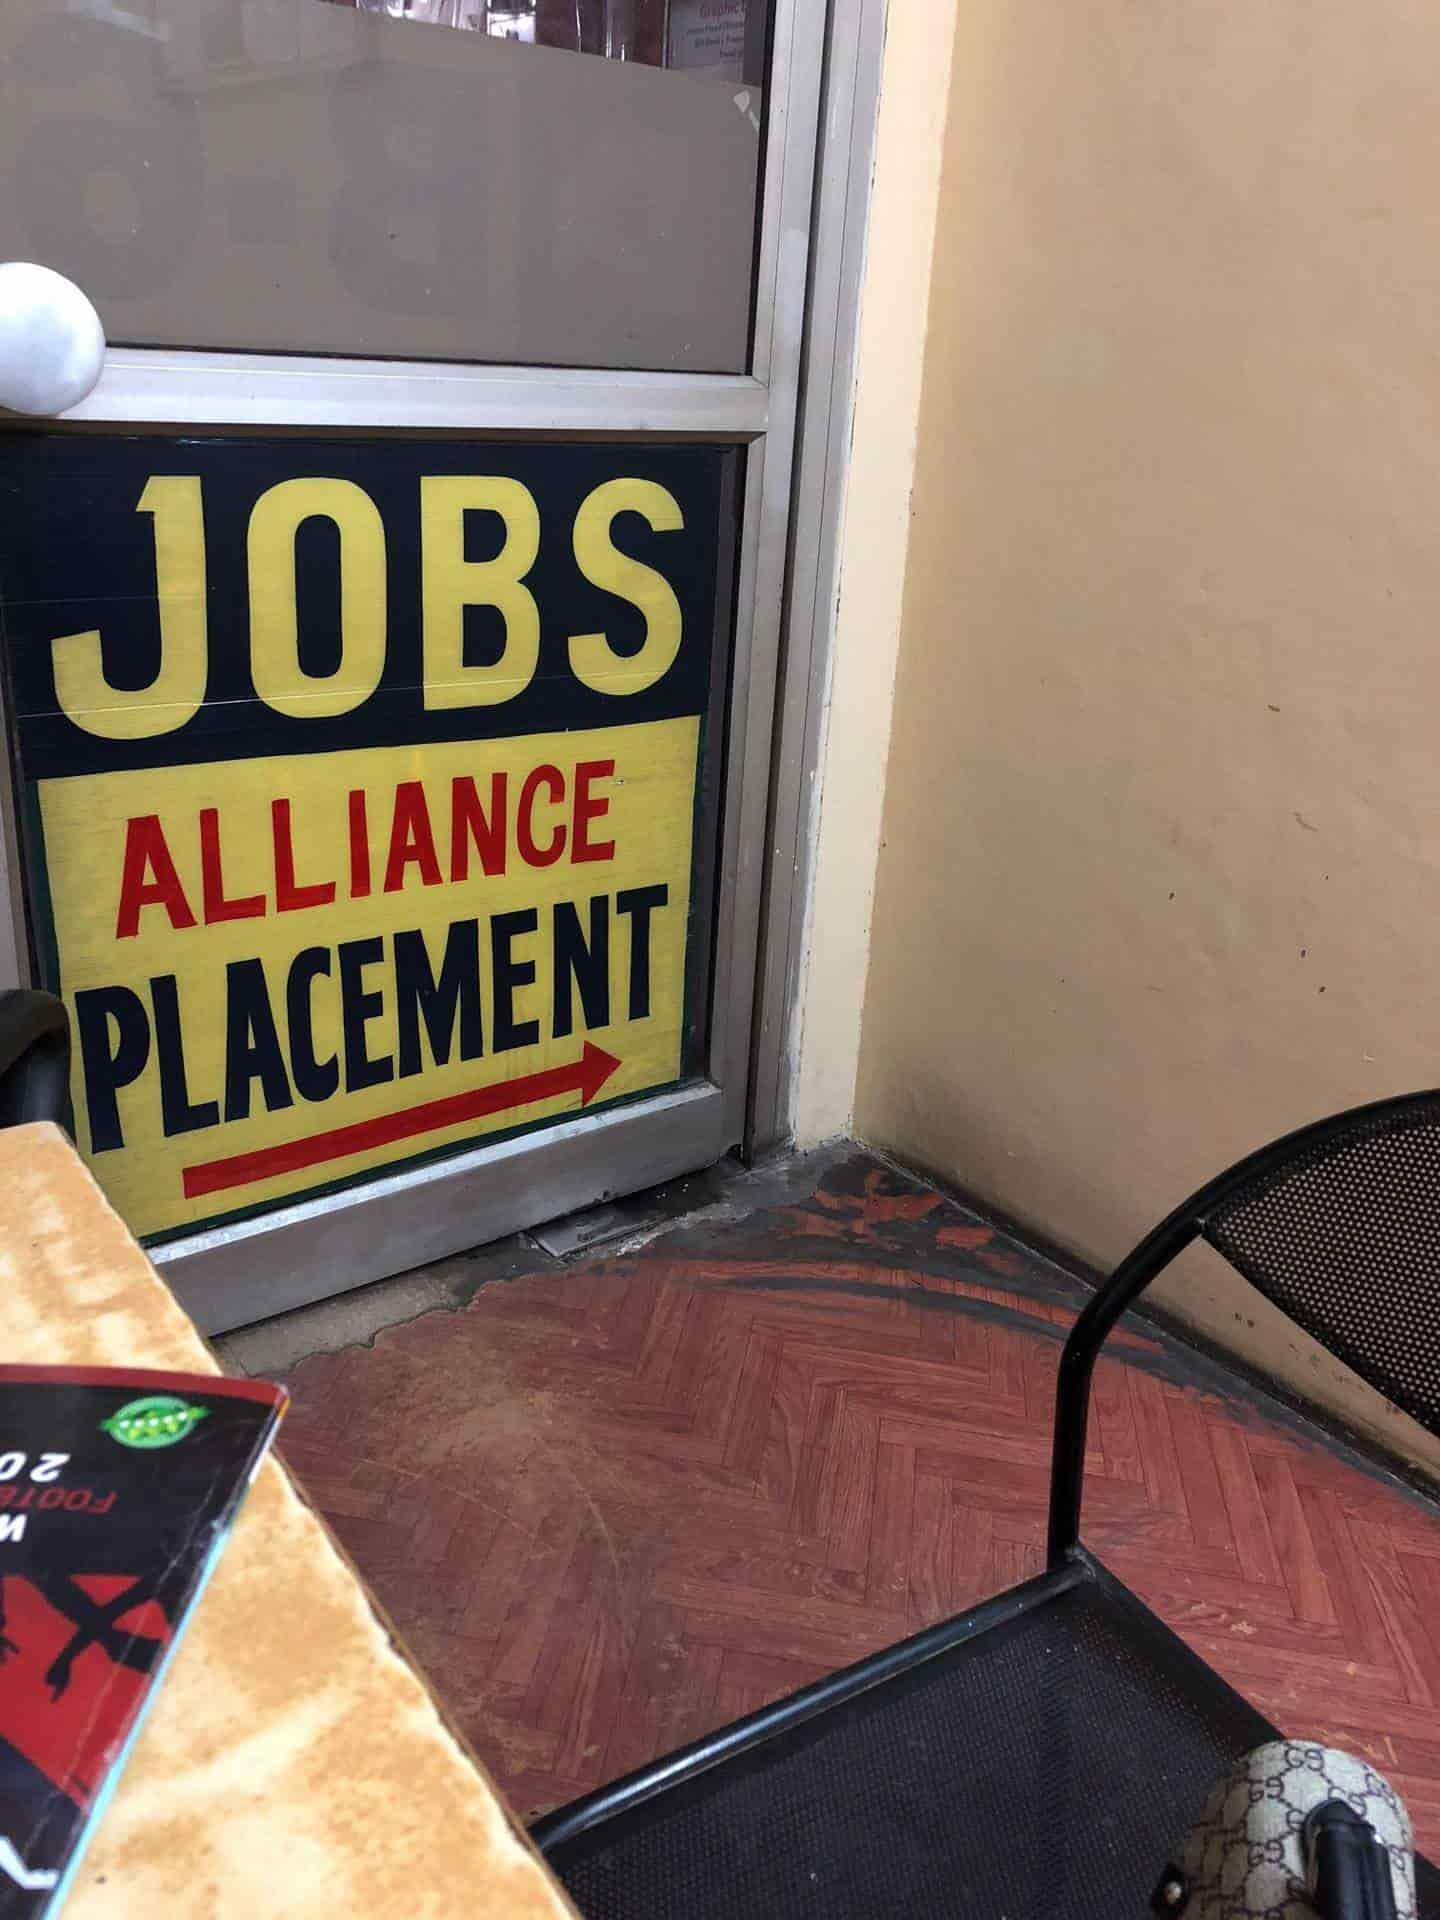 Alliance Placement, Sector 18 - Placement Services (Candidate) in